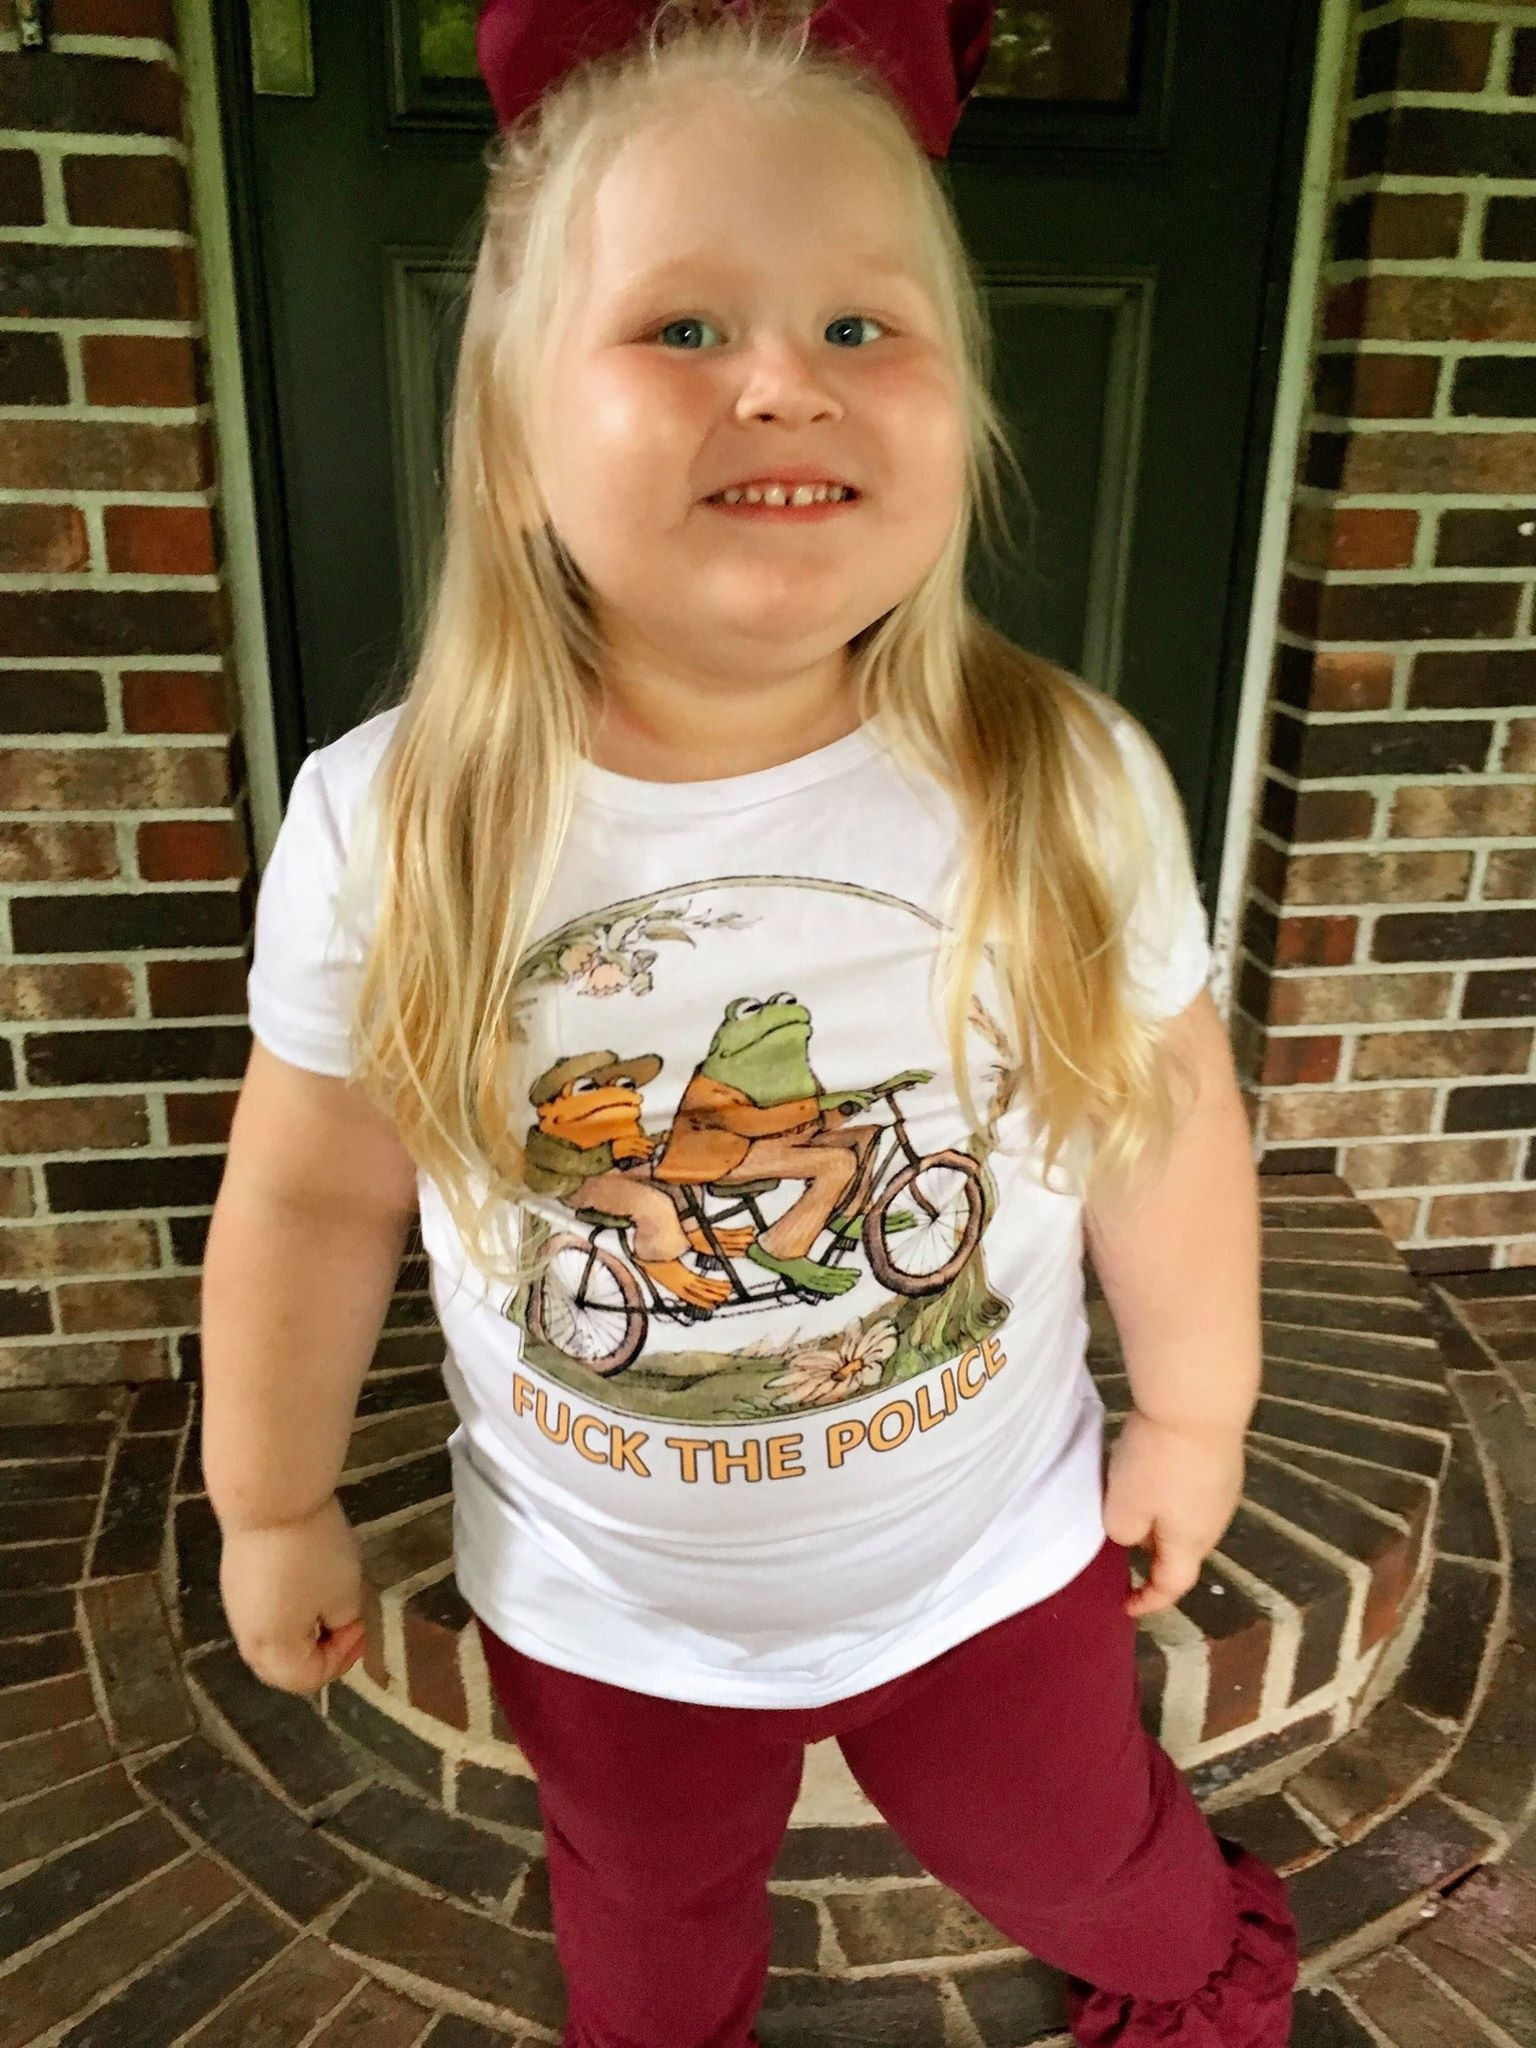 An Illinois Mom Ordered A Shirt For Her 3-Year-Old From A